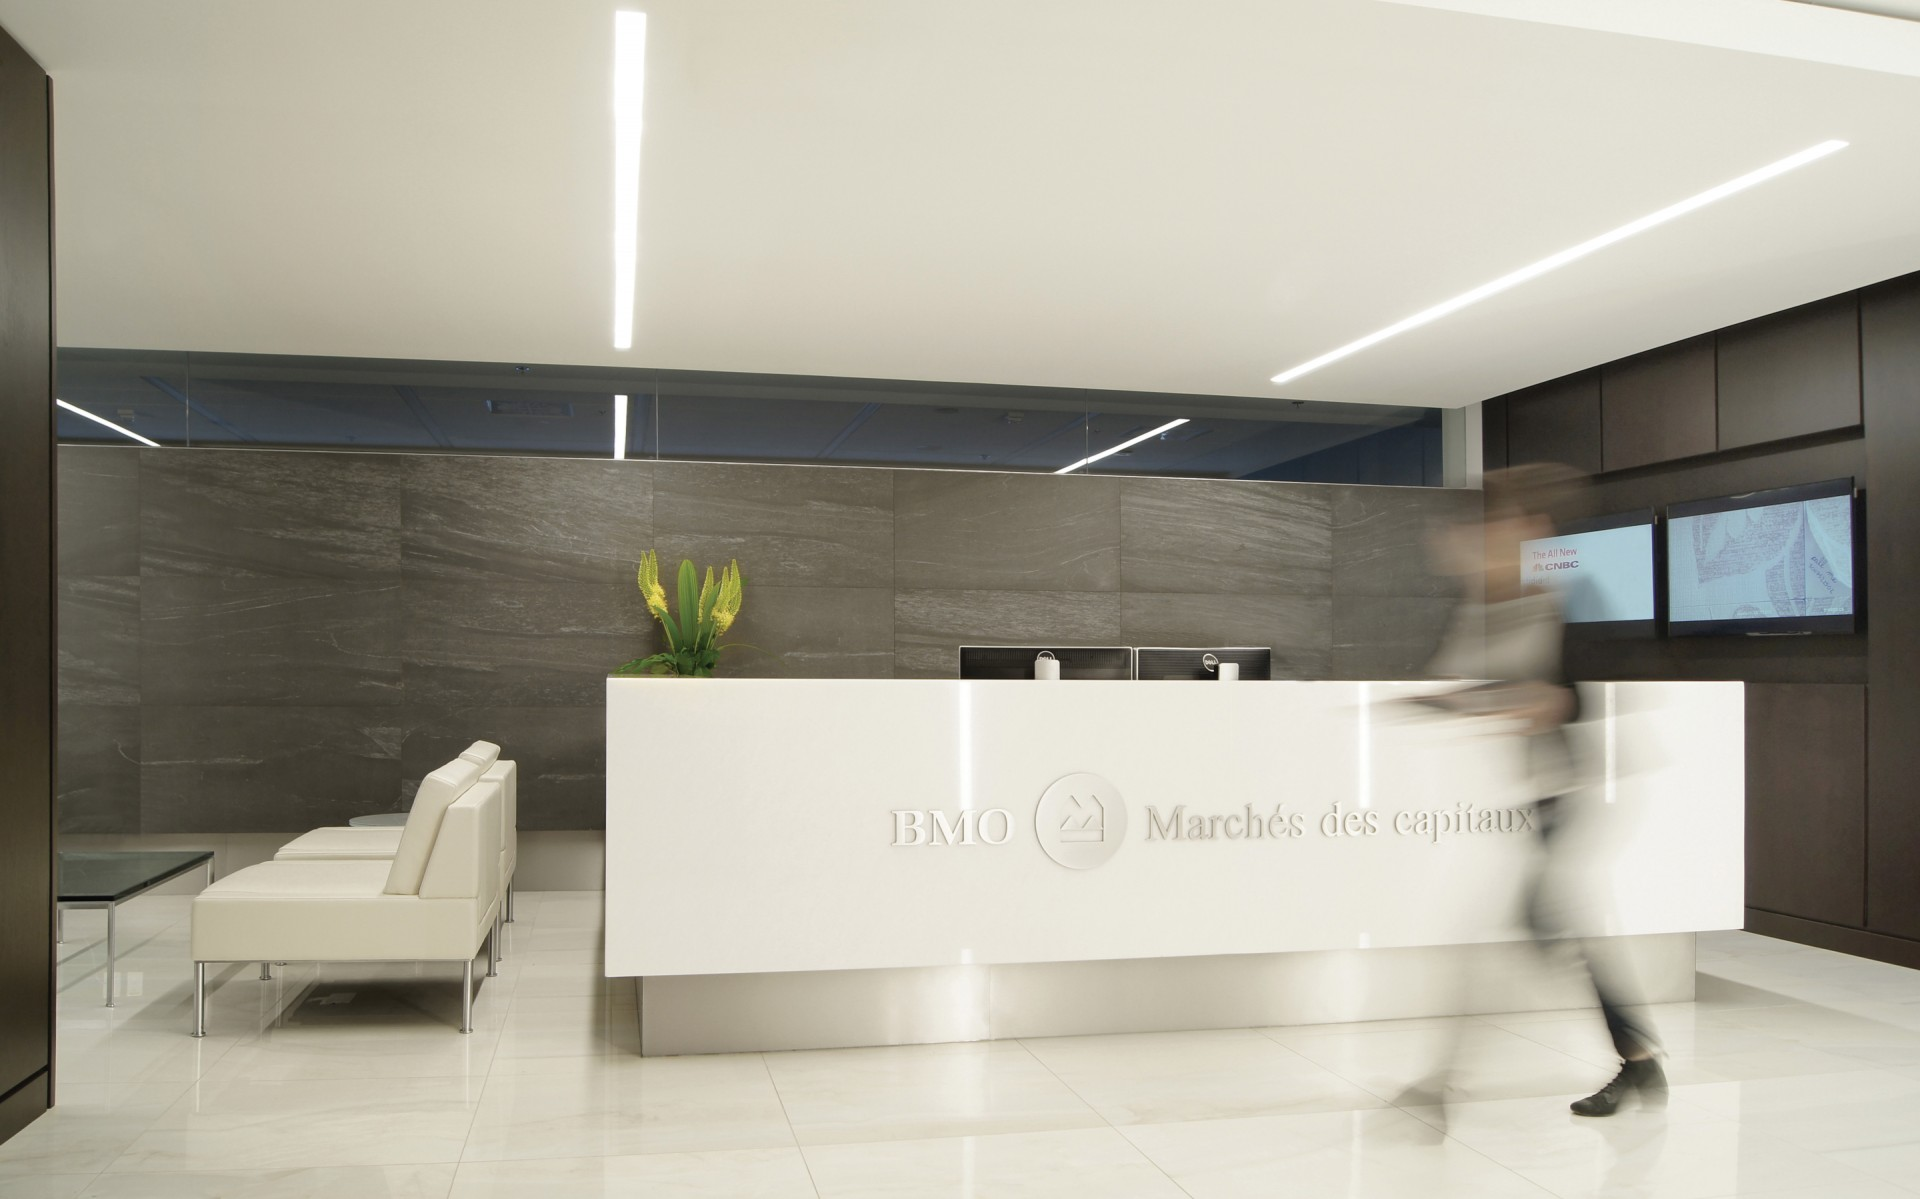 BMO Capital Markets, Montreal, Canada